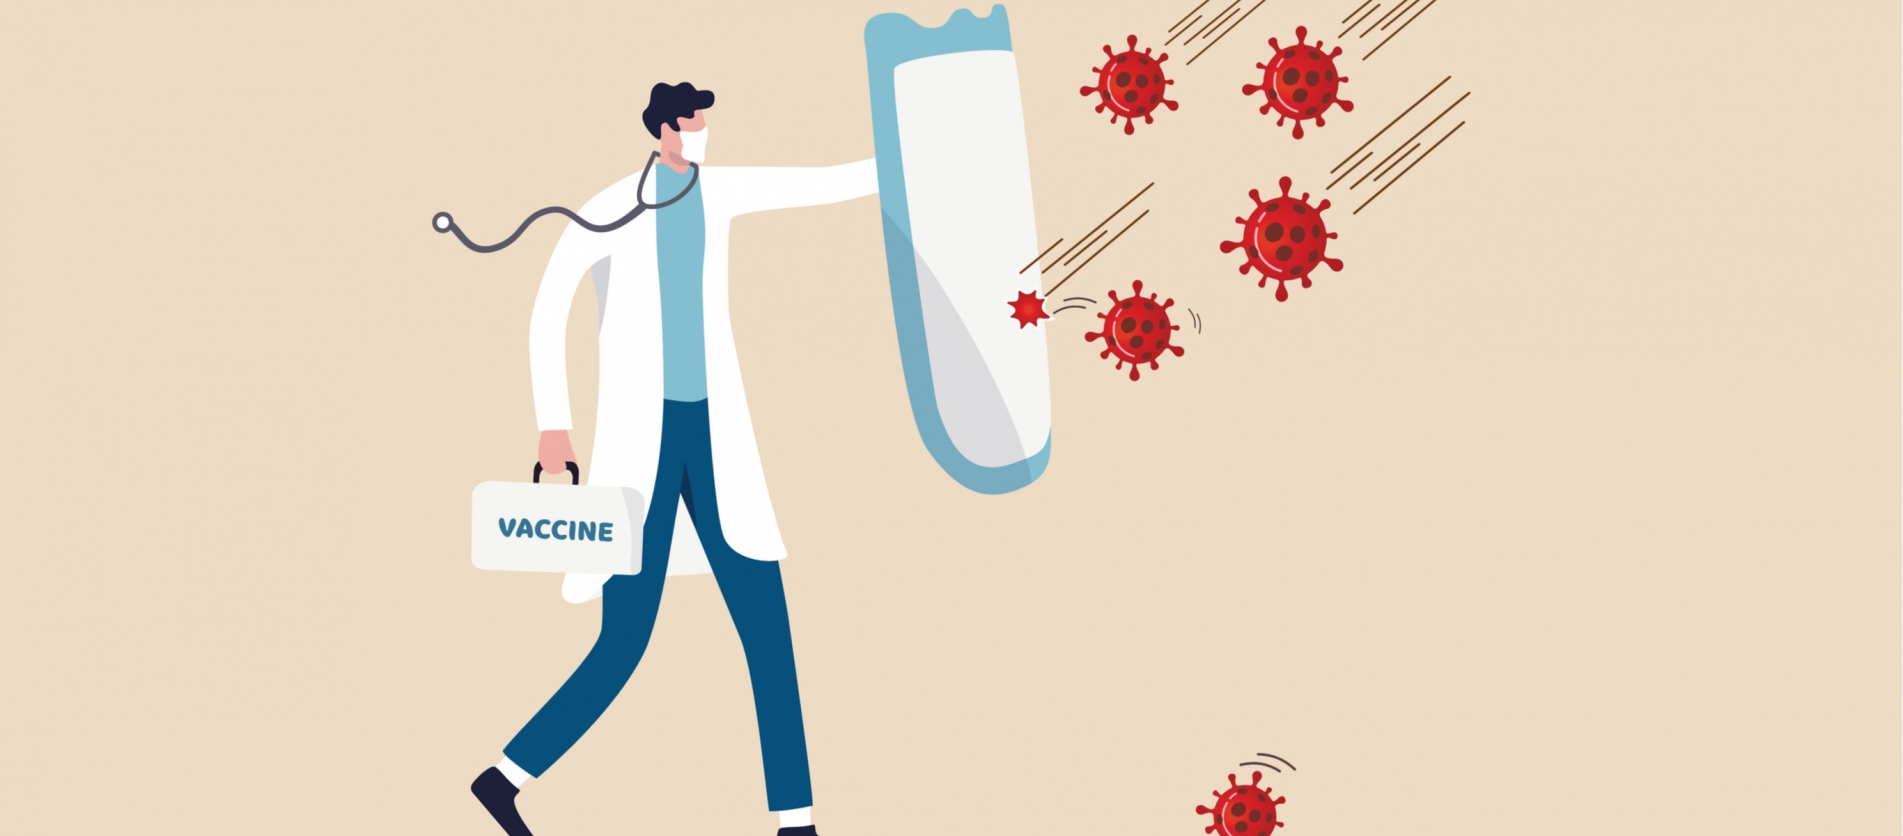 Do You Want The COVID-19 Vaccine?